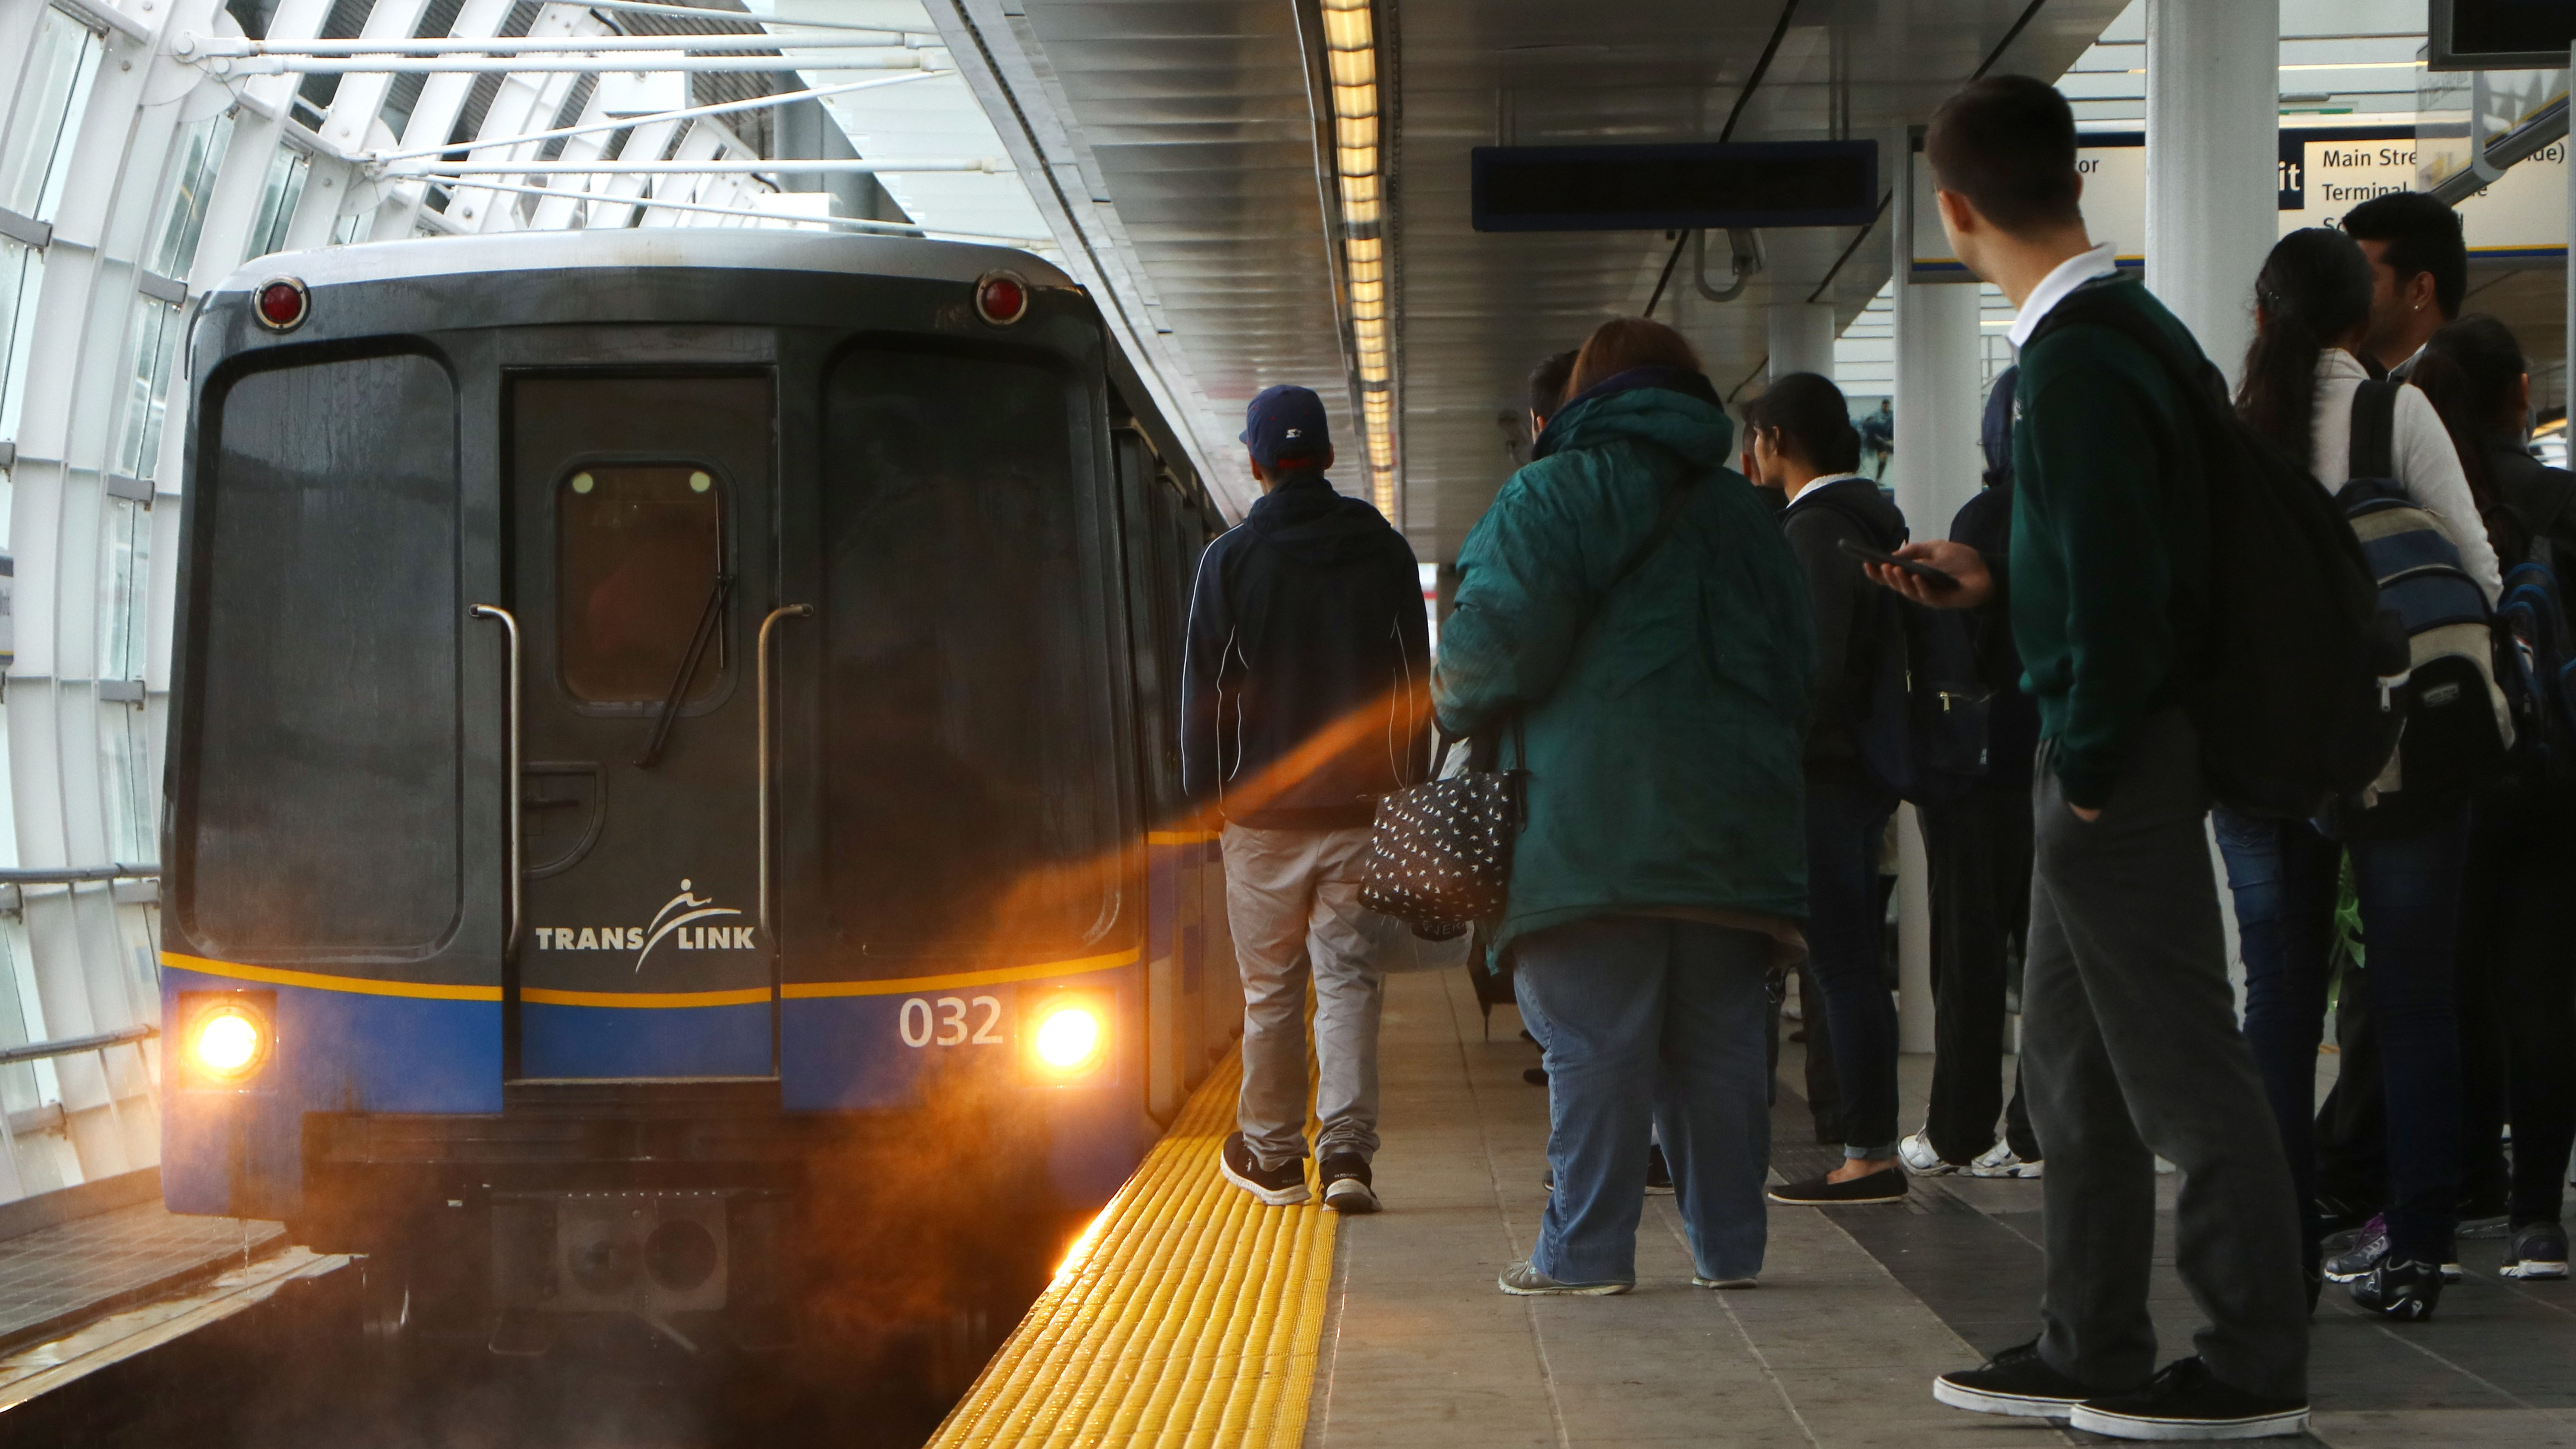 More problems for SkyTrain due to track issue